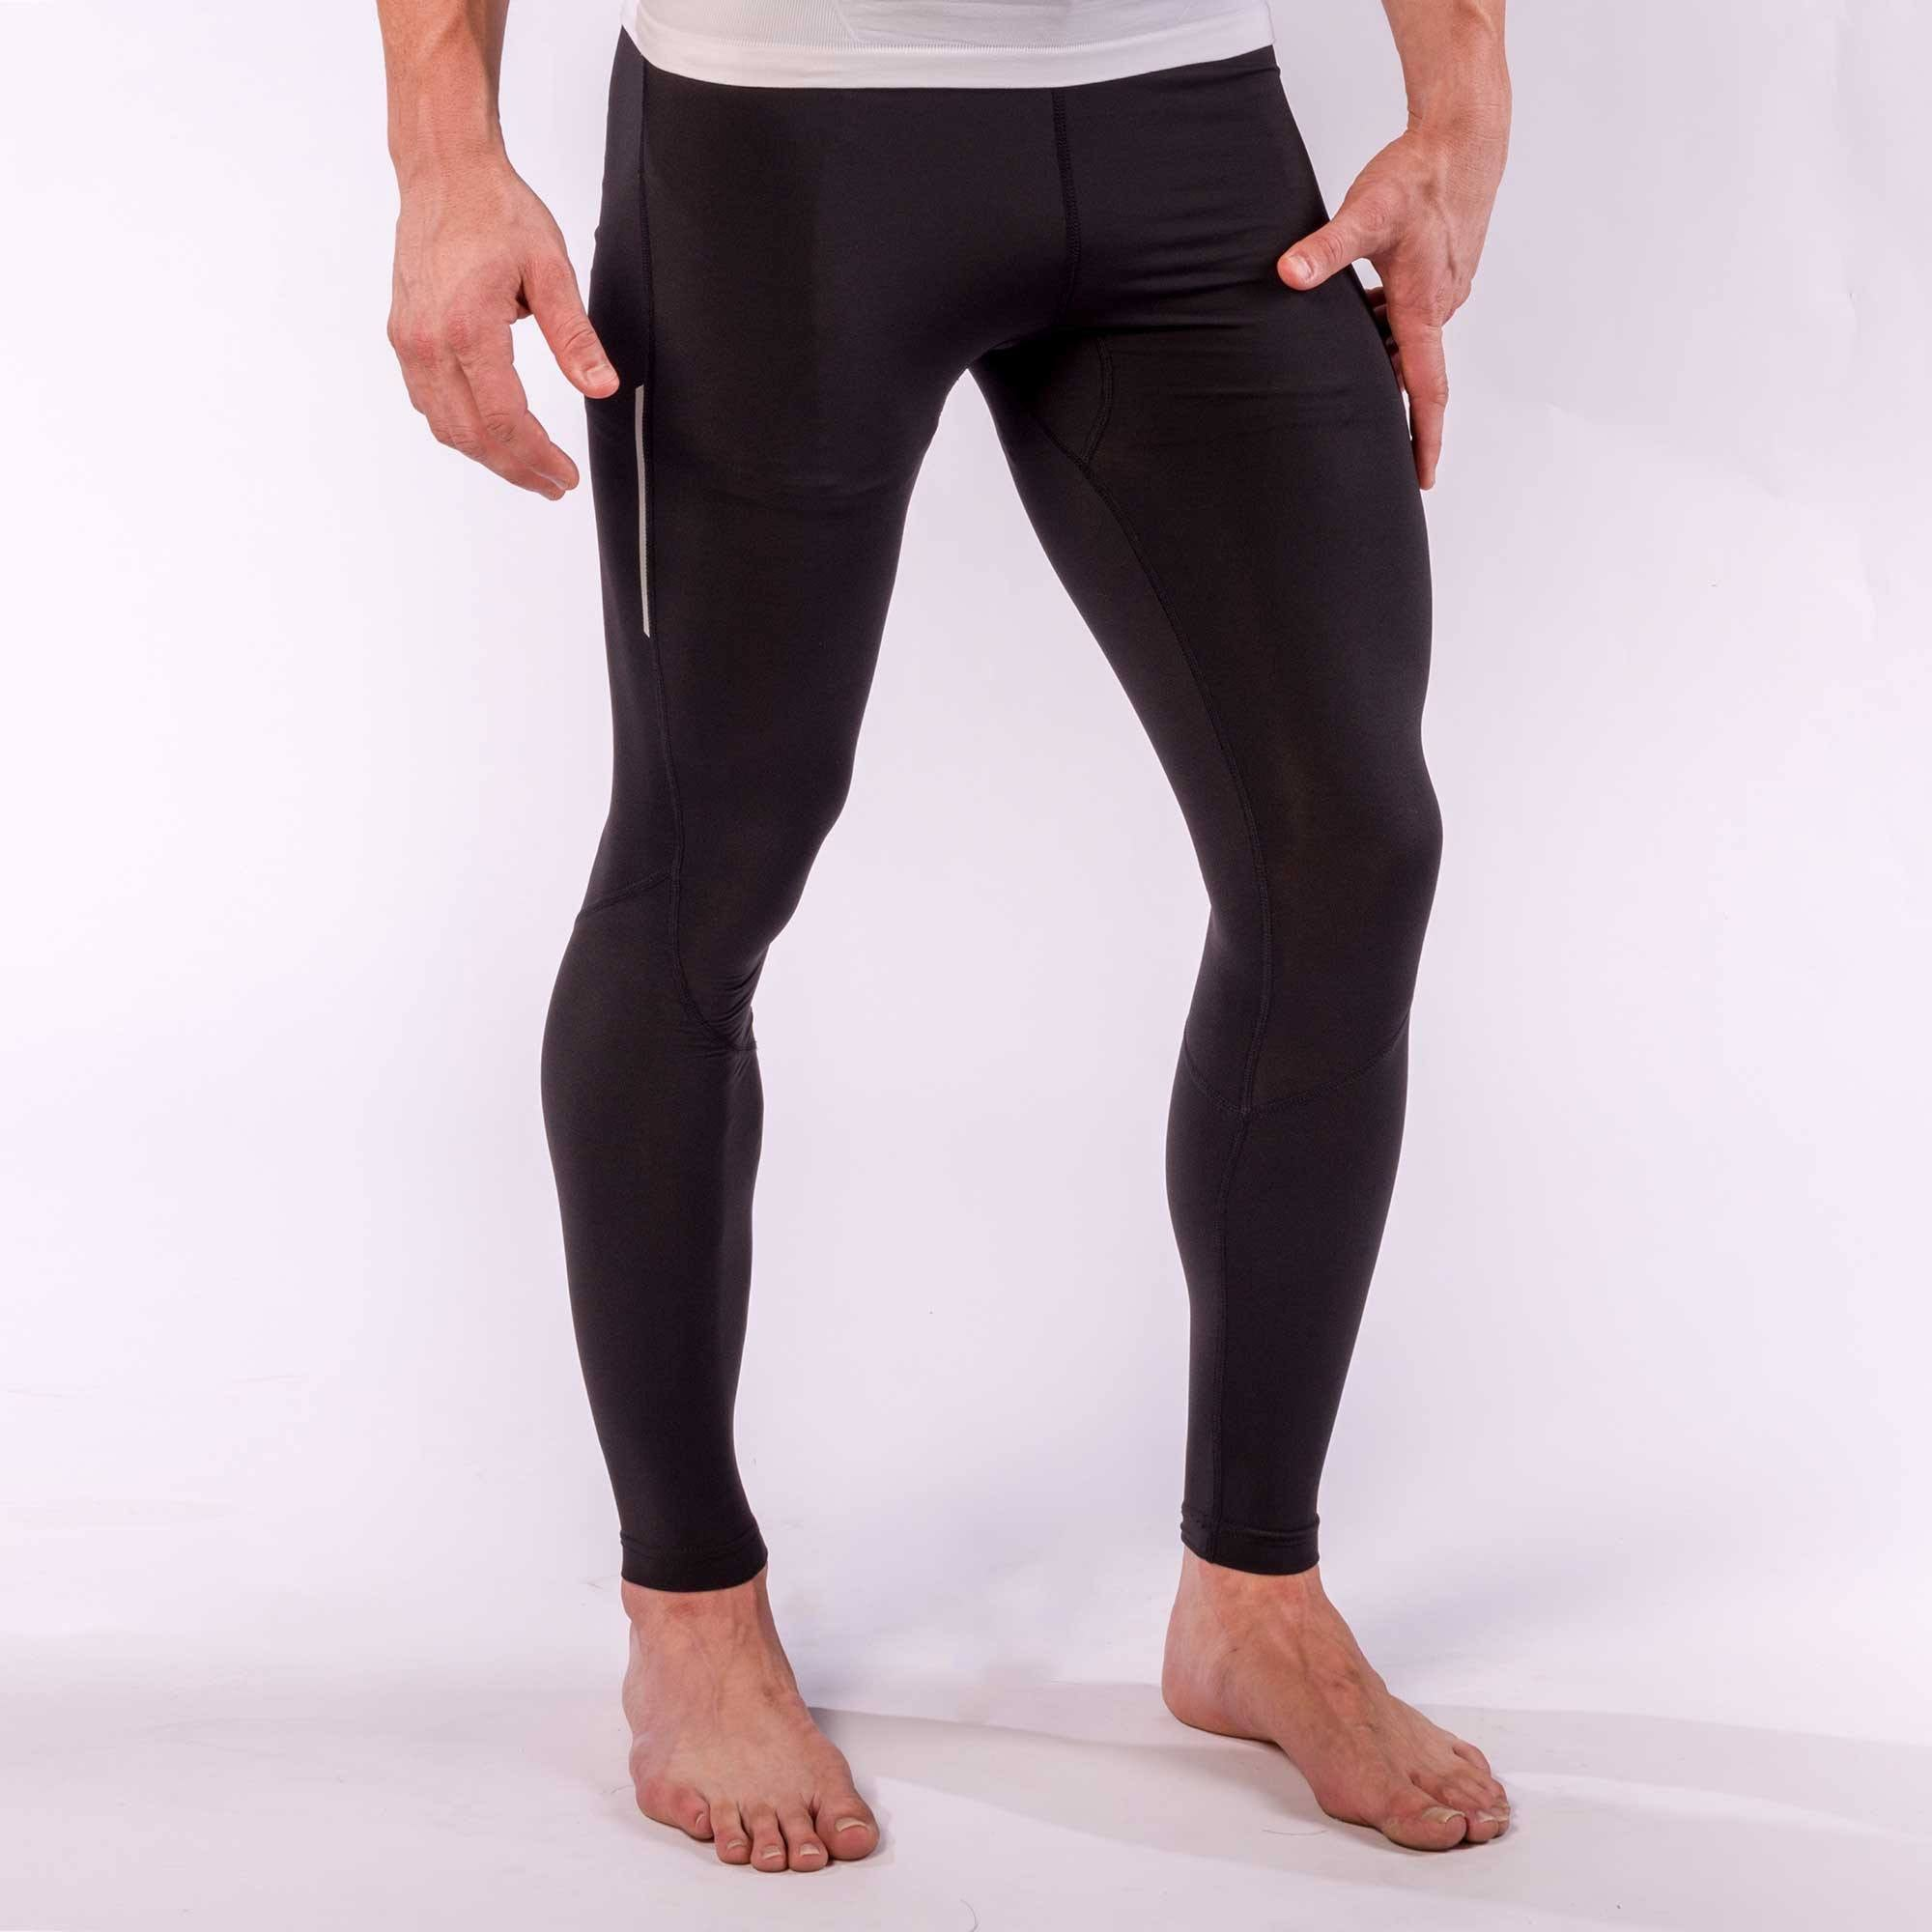 bd2bacb9370f3 Men's XT Compression Tights - Best Basketball Tight | Zensah